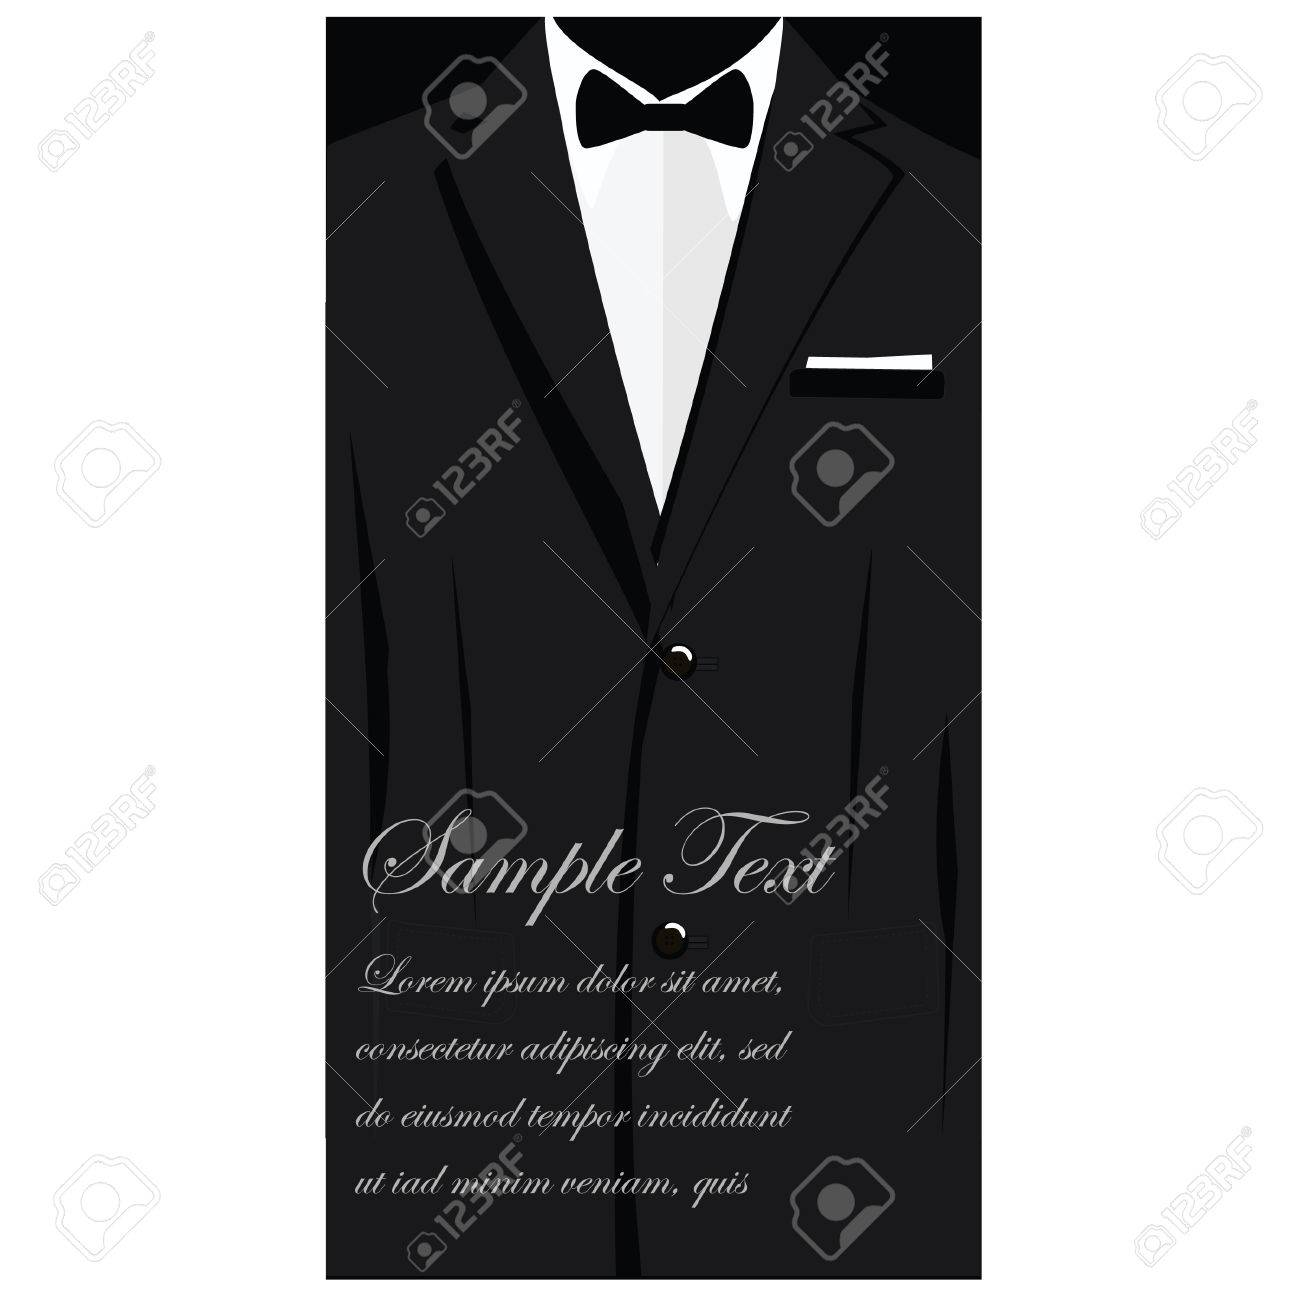 Vector Business Cards With Elegant Suit With Bowtie, Business ...